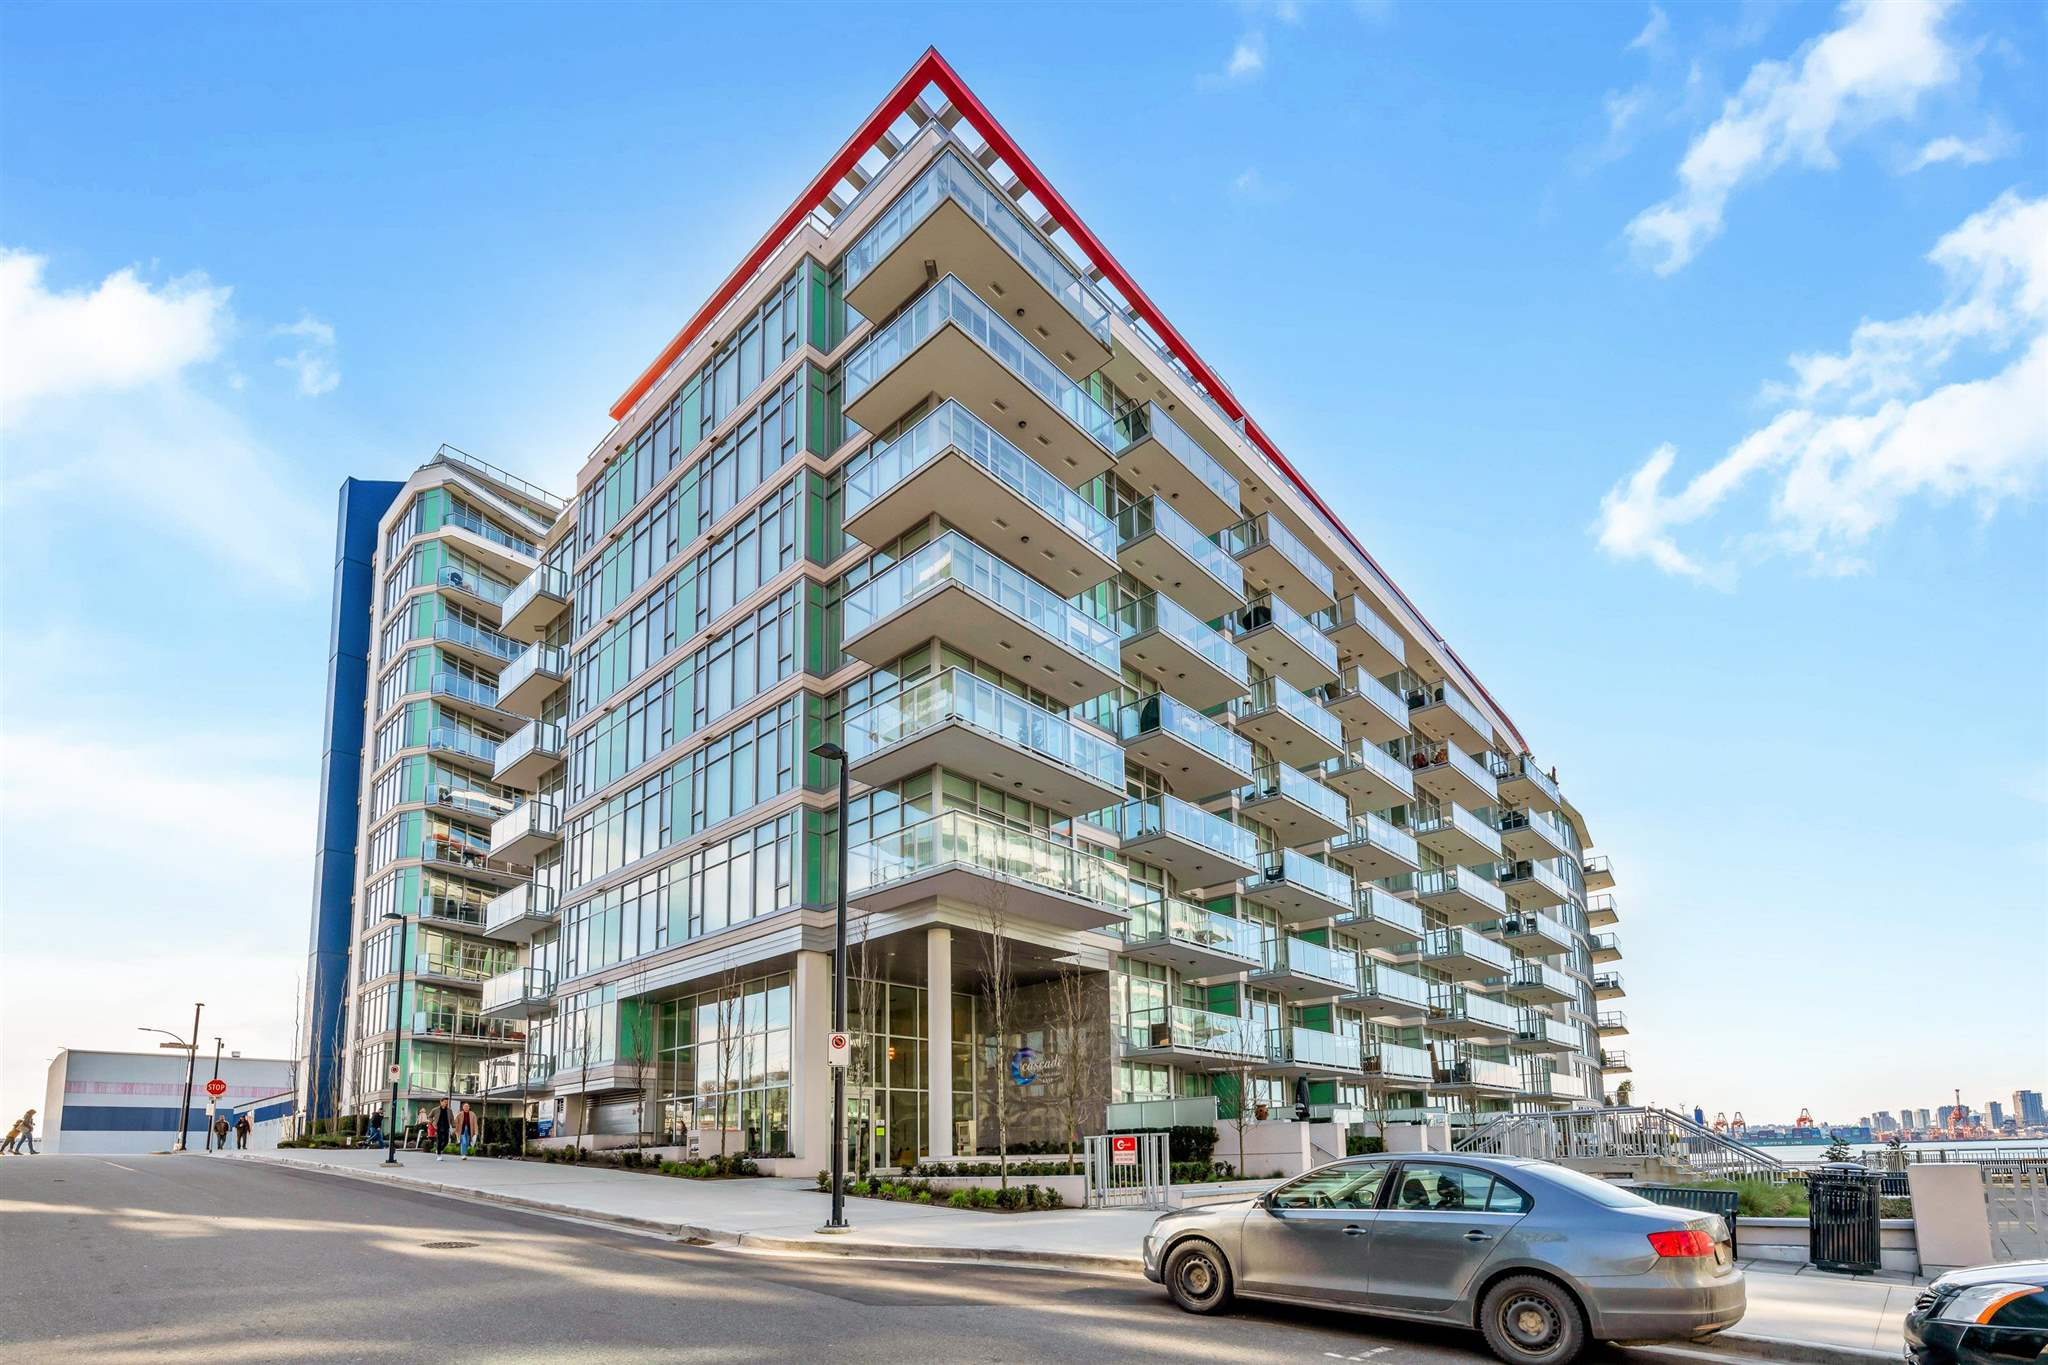 103 185 VICTORY SHIP WAY - Lower Lonsdale Apartment/Condo for sale, 1 Bedroom (R2600881)